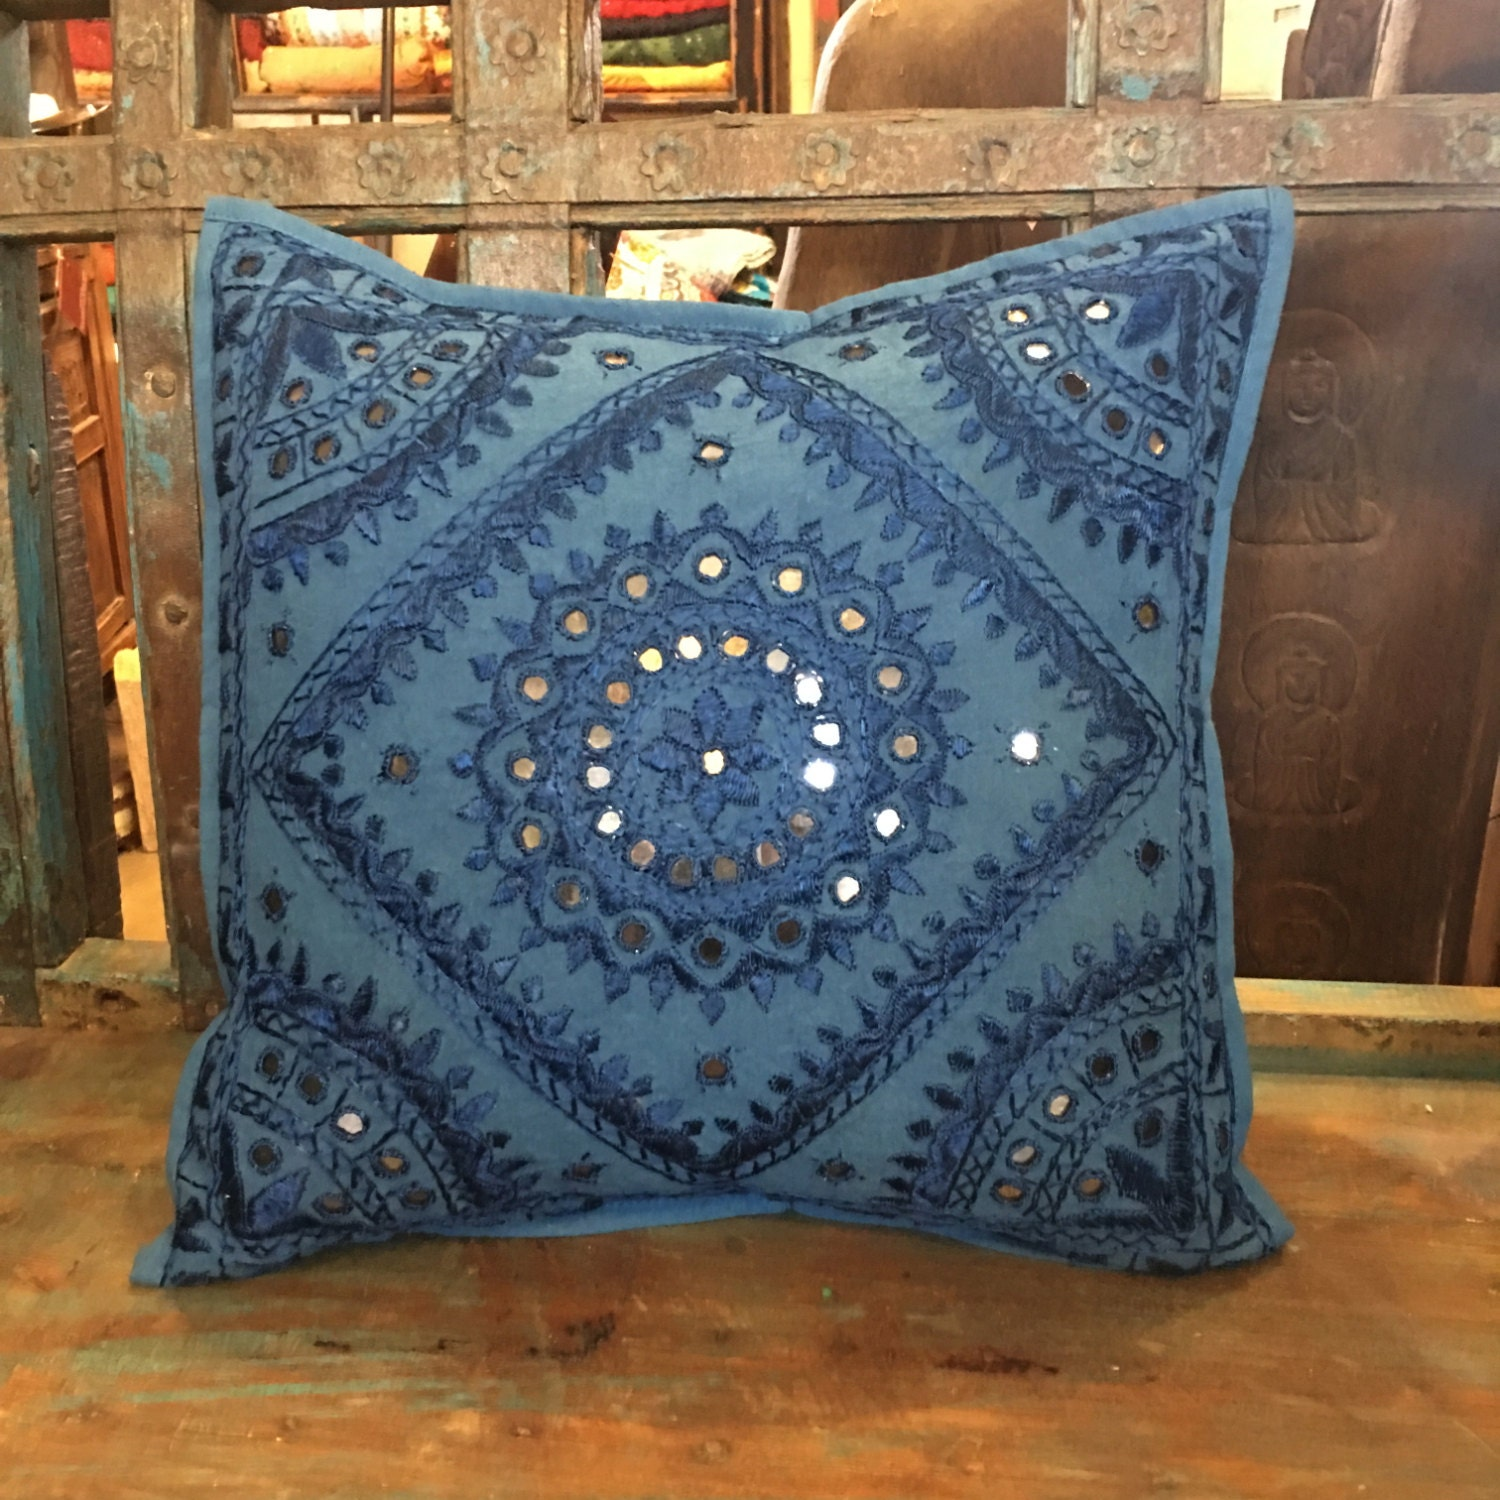 Floor Pillows Moroccan : Moroccan style floor pillows Decorative throw by TaraDesignLA